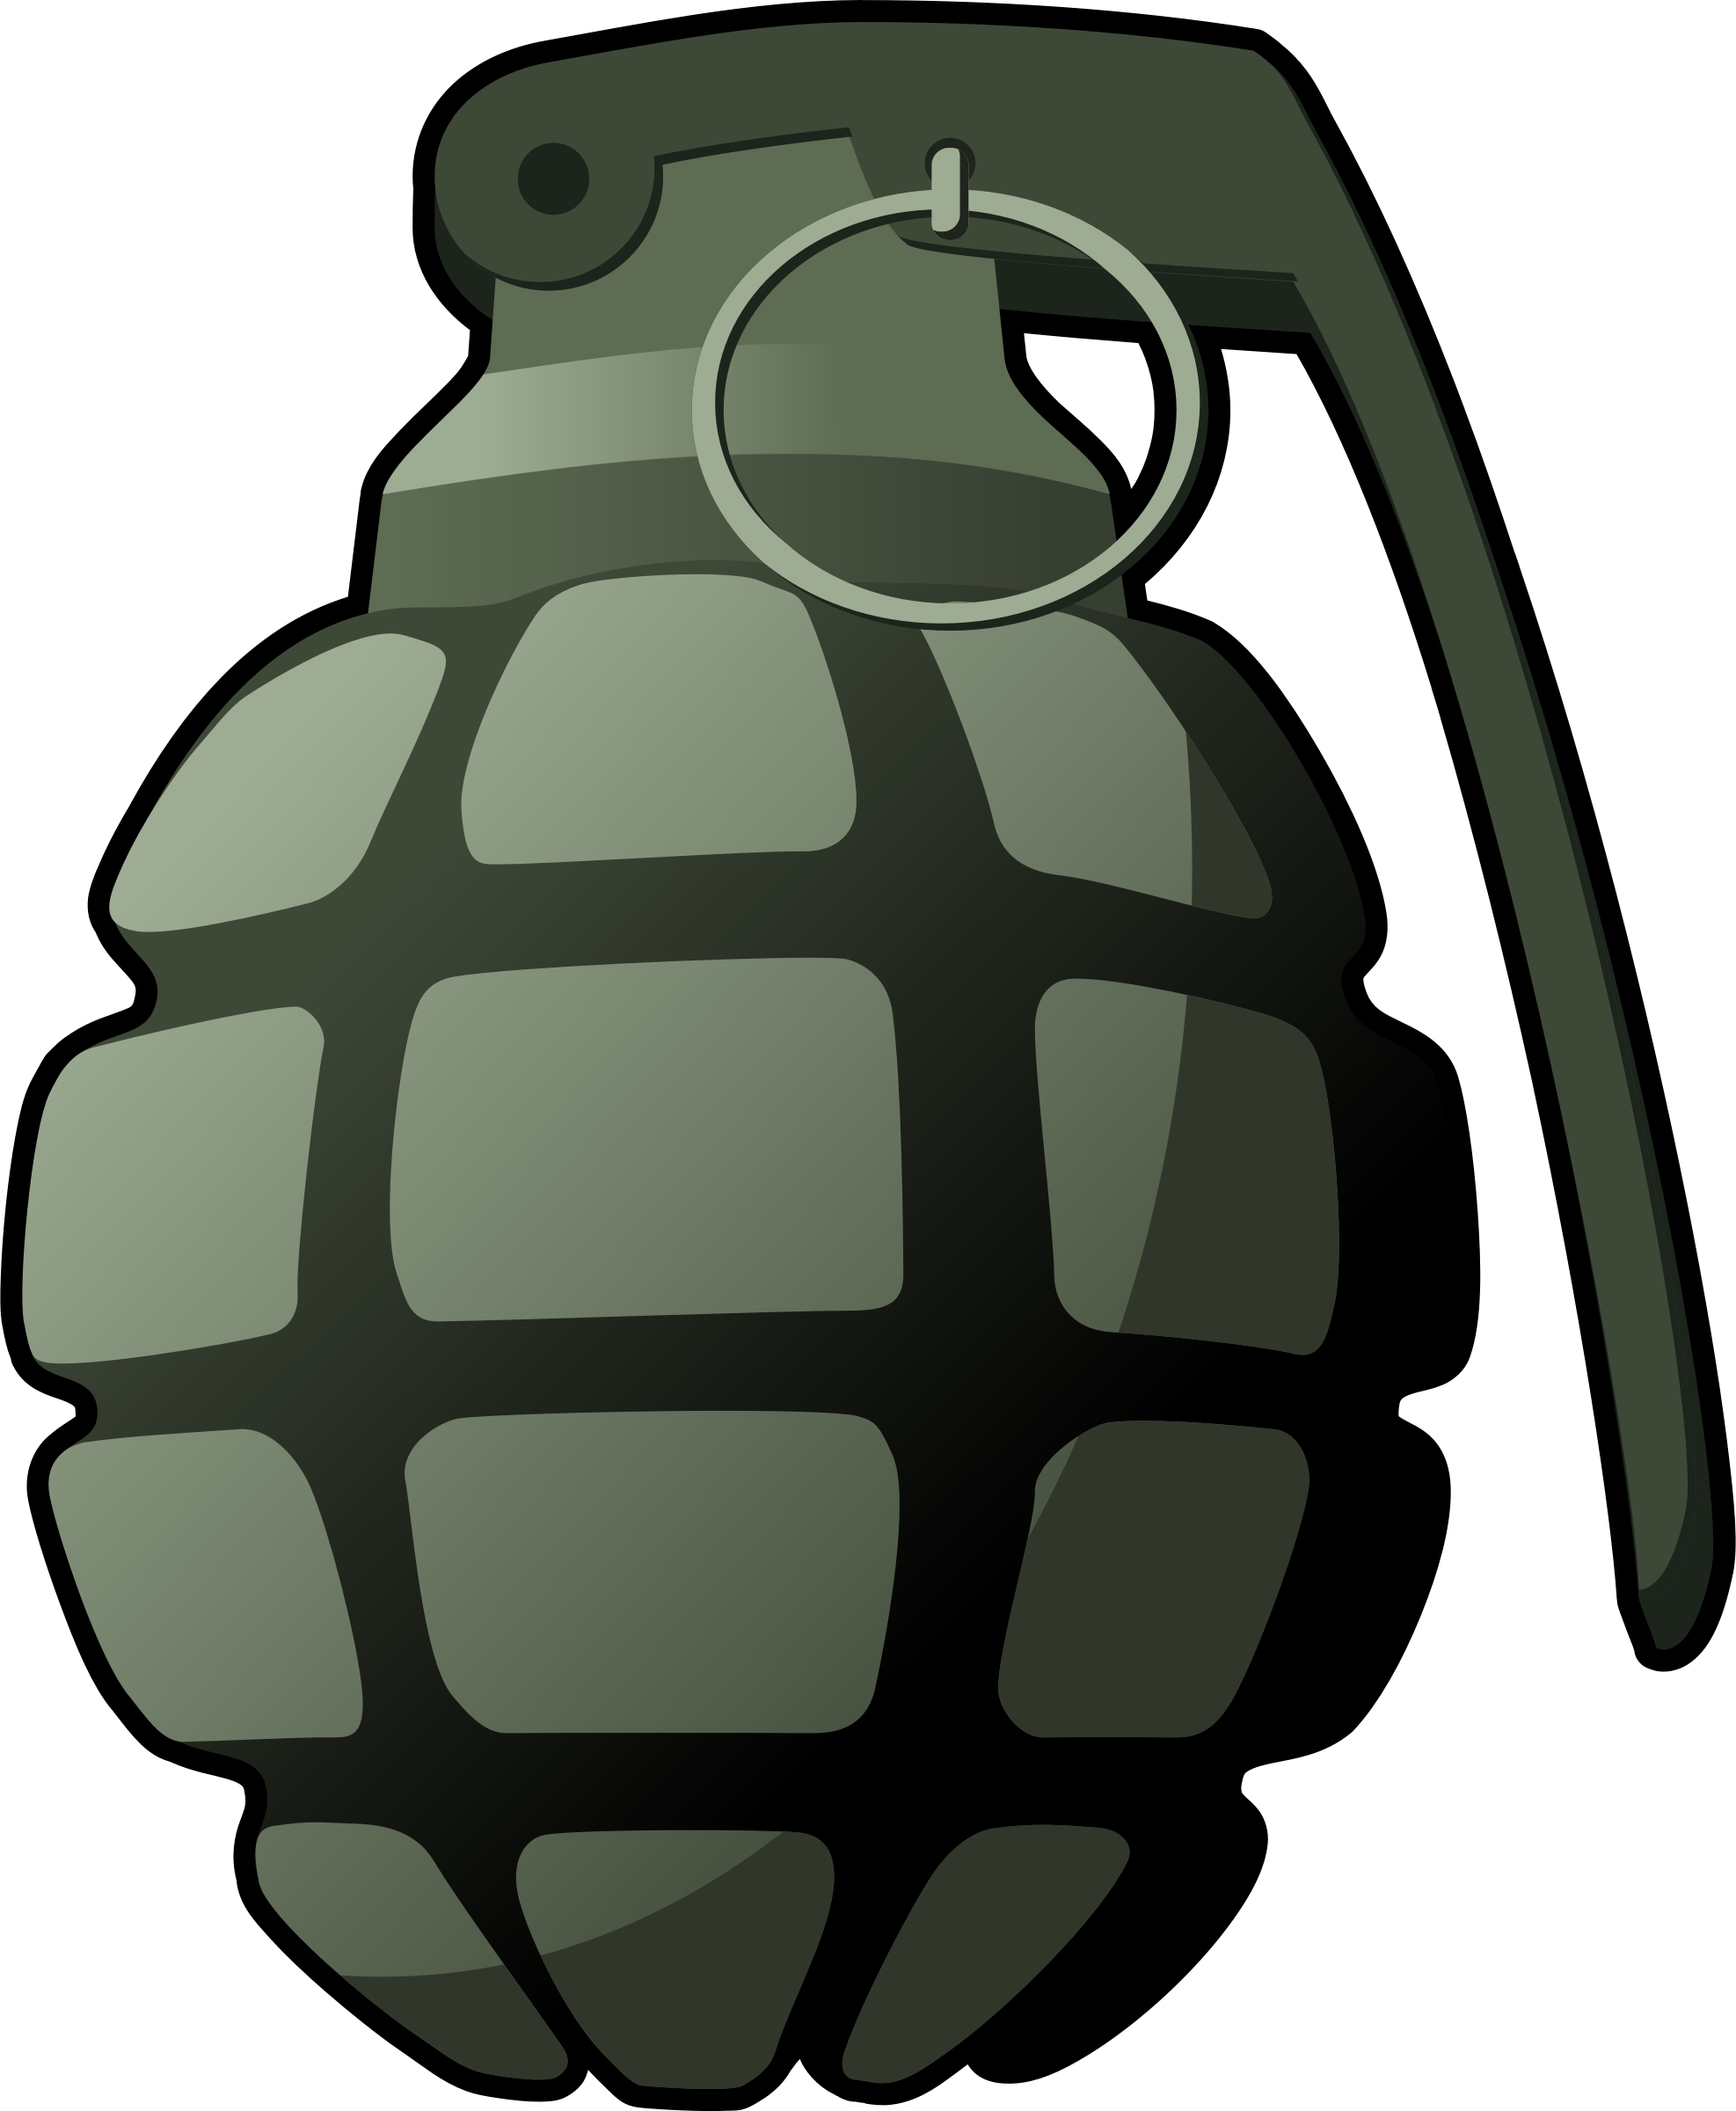 Image for Free Grenade Military High Resolution Clip Art.